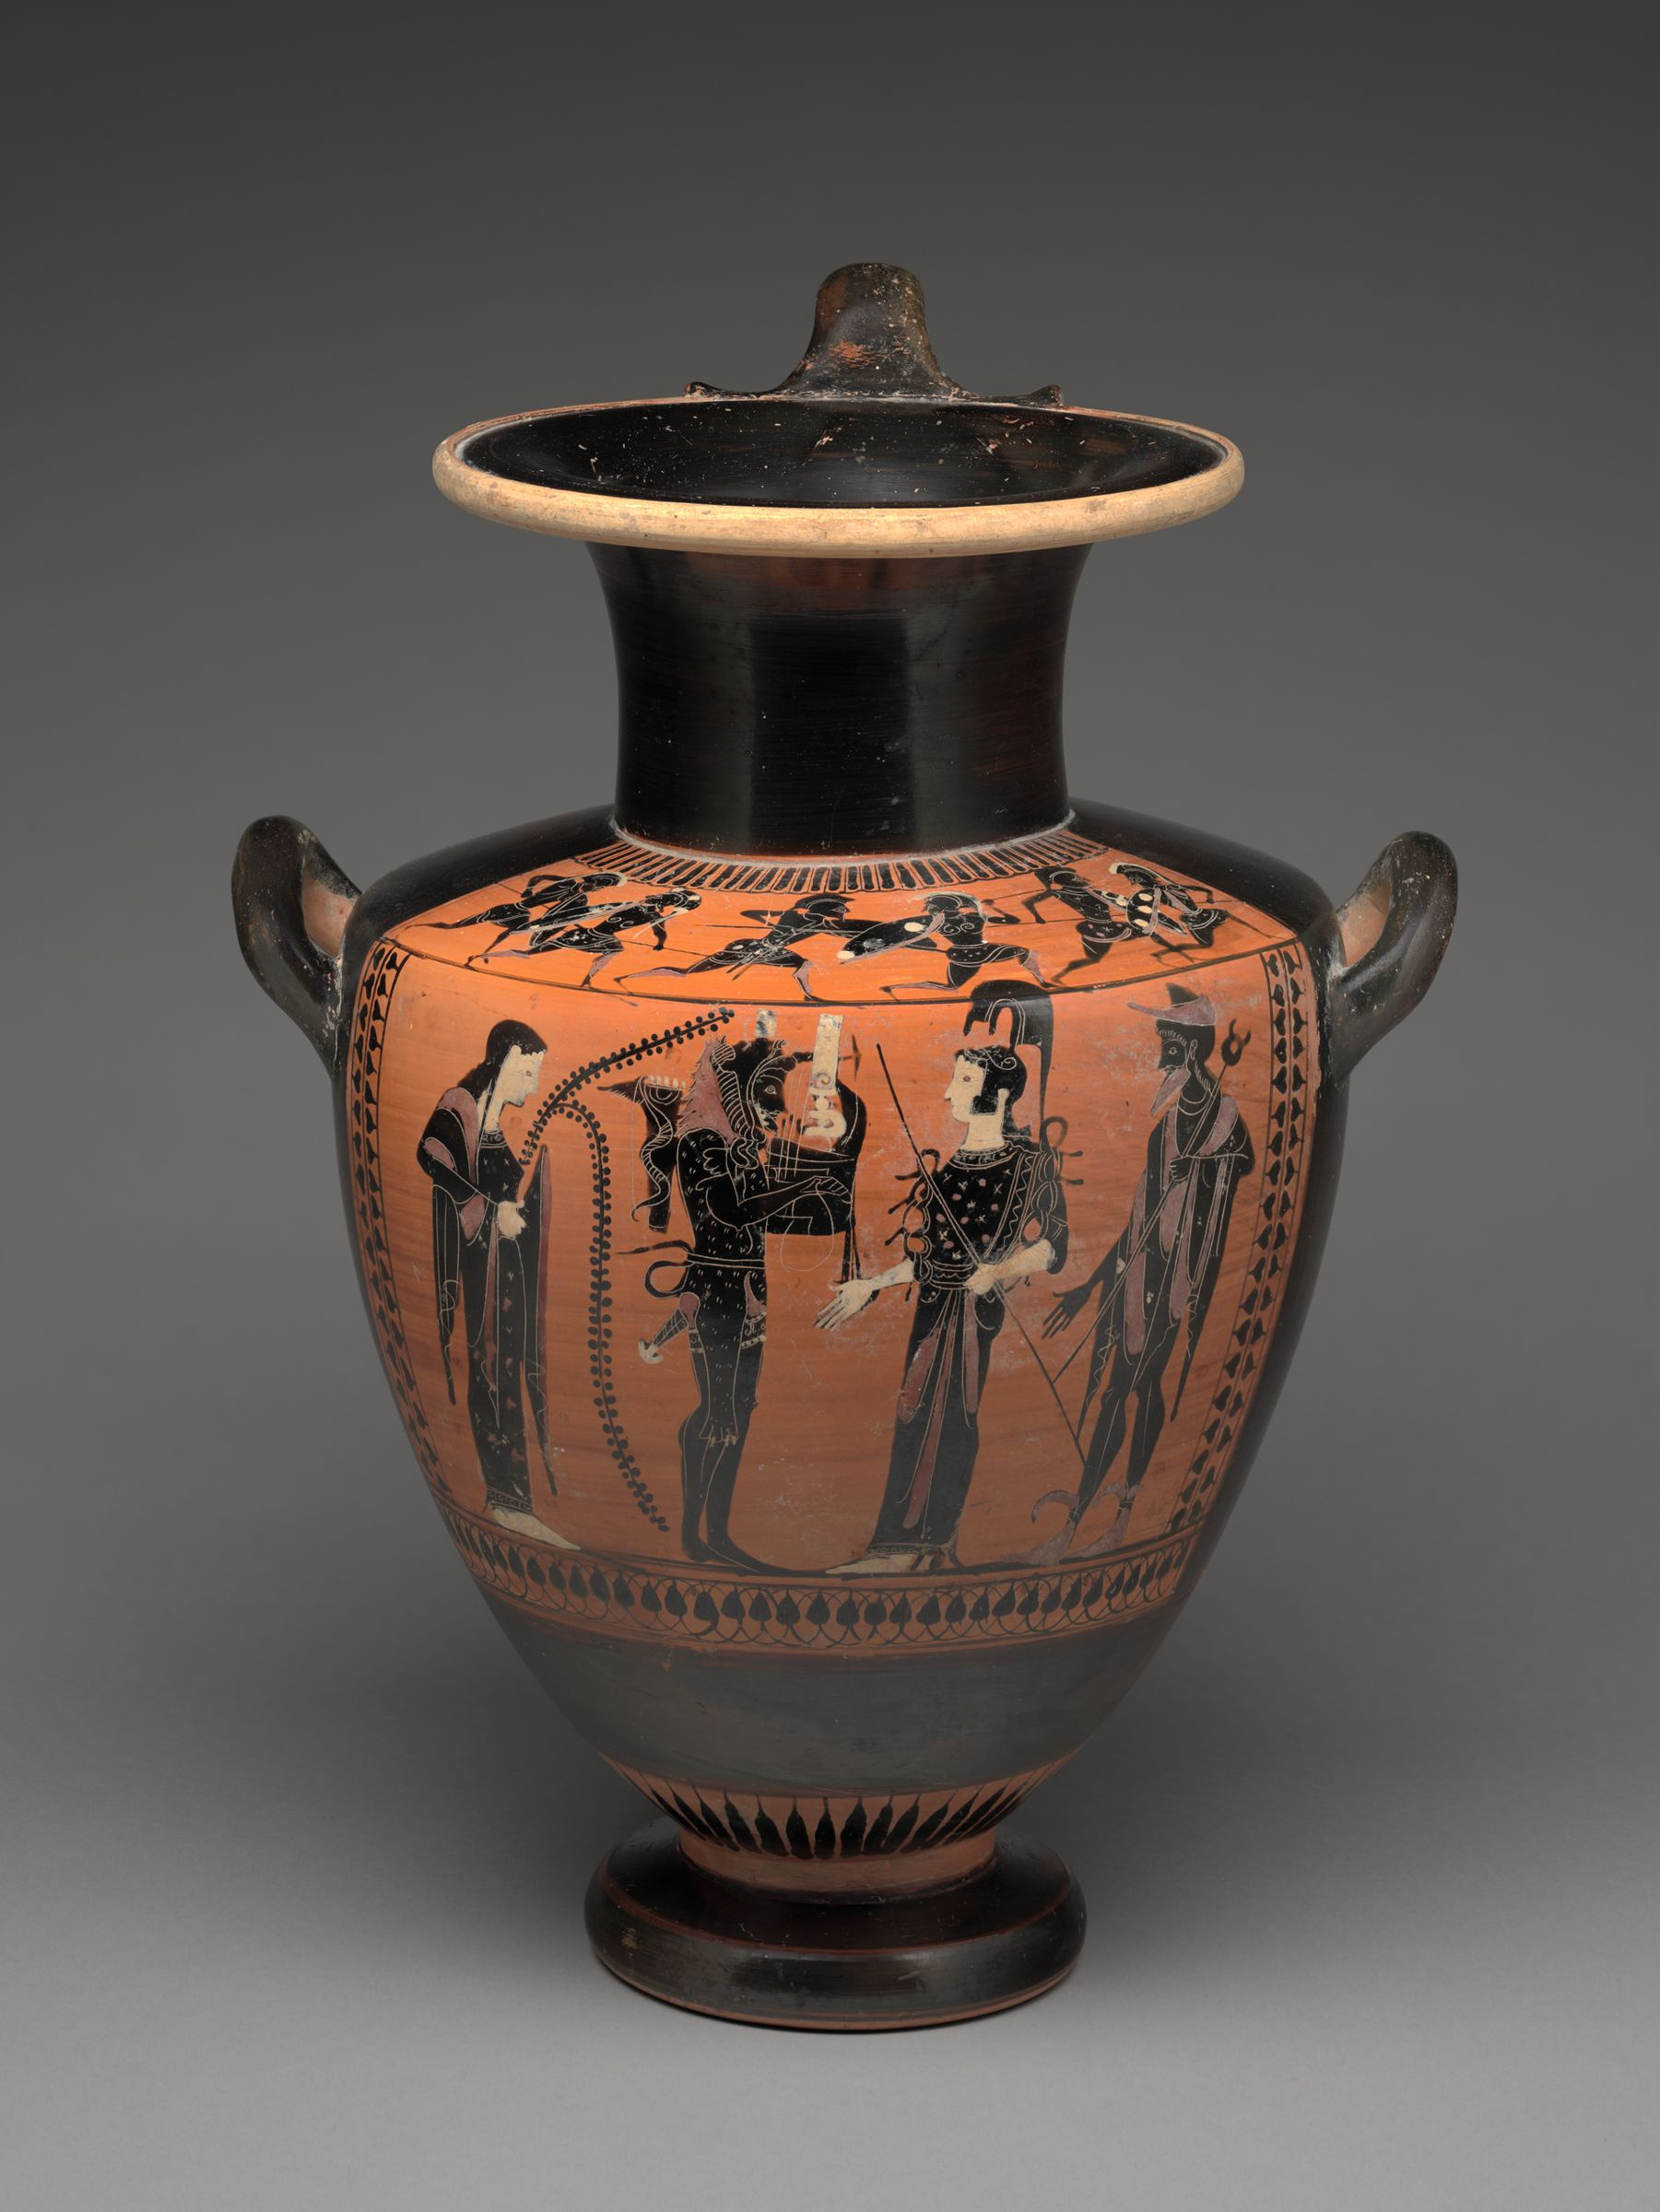 Hydria (Water Jar): Herakles As Musician